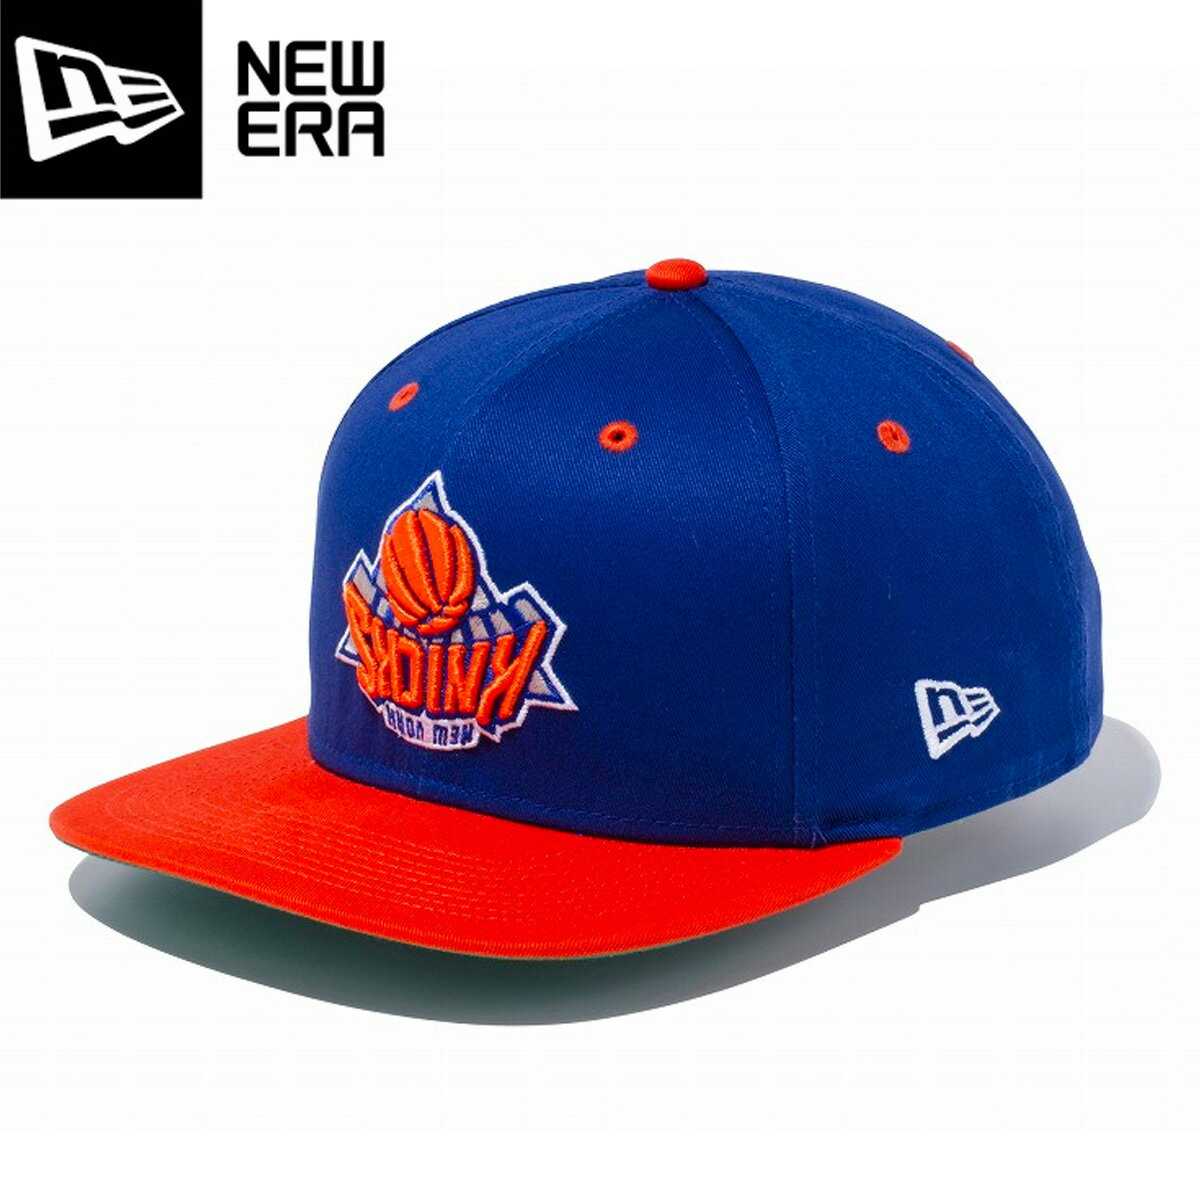 NEW ERA 9FIFTY ORIGINAL FIT UPSIDE DOWN NEW YORK KNICKS ニューエラ 9FIFTY アップサイド ダウン ニューヨーク ニックス LROY/ORG/OFC